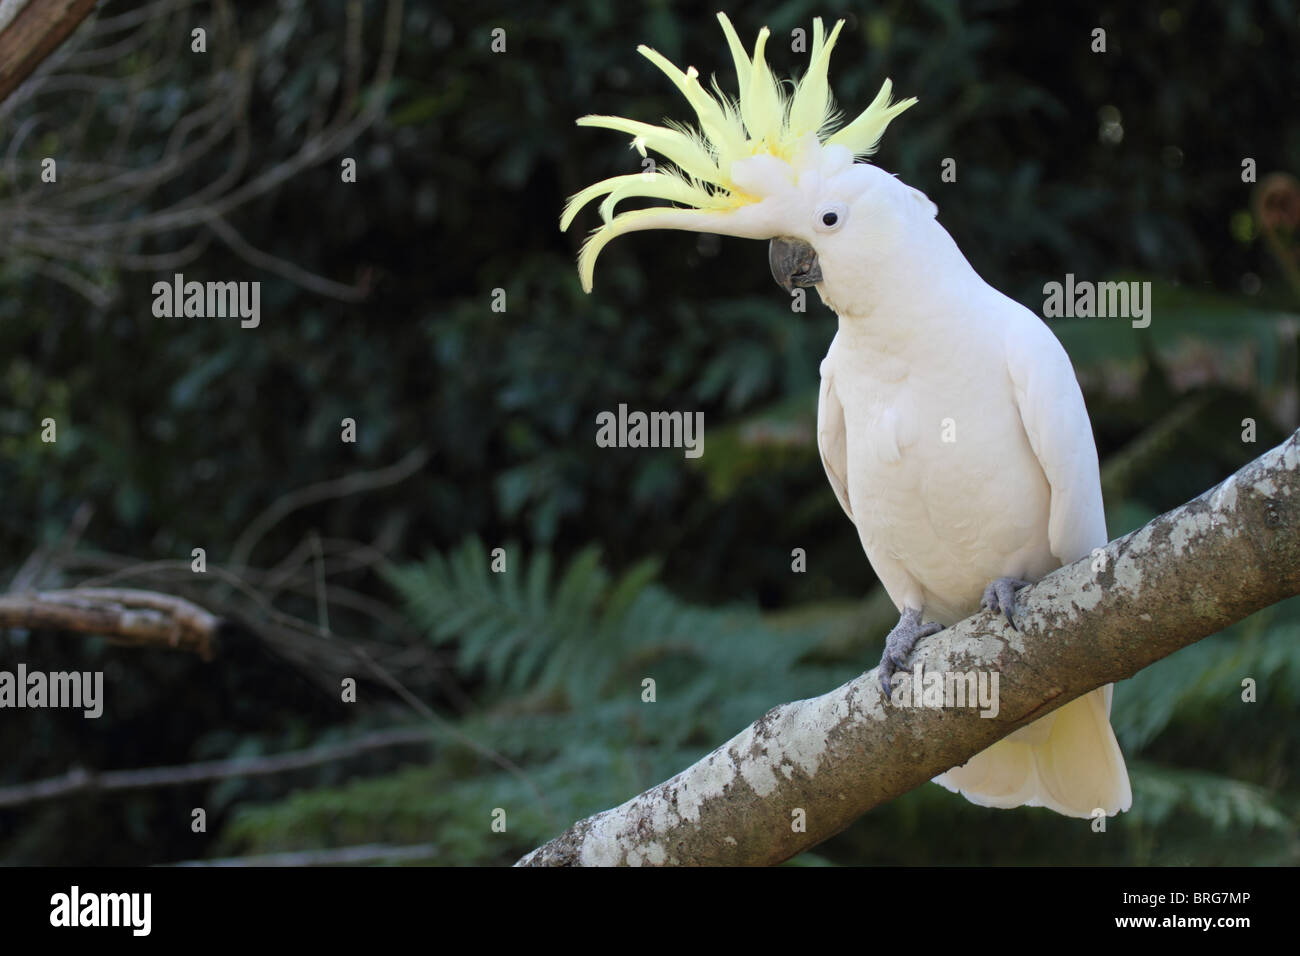 Sulphur-crested cockatoo with crest raised - Stock Image